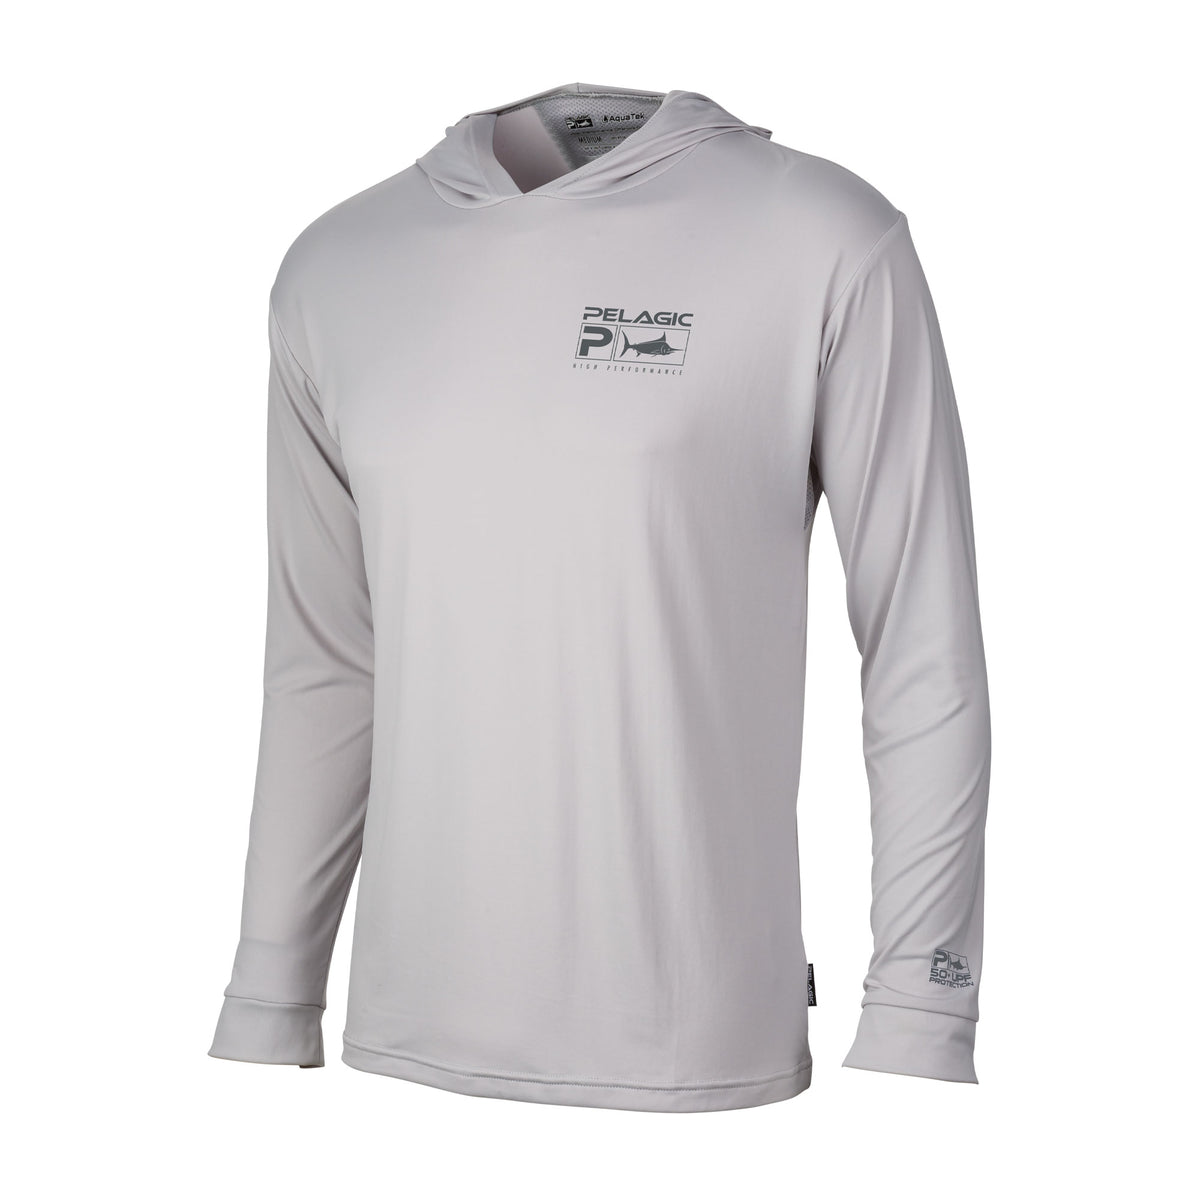 Aquatek Hooded Fishing Shirt Big Image - 1